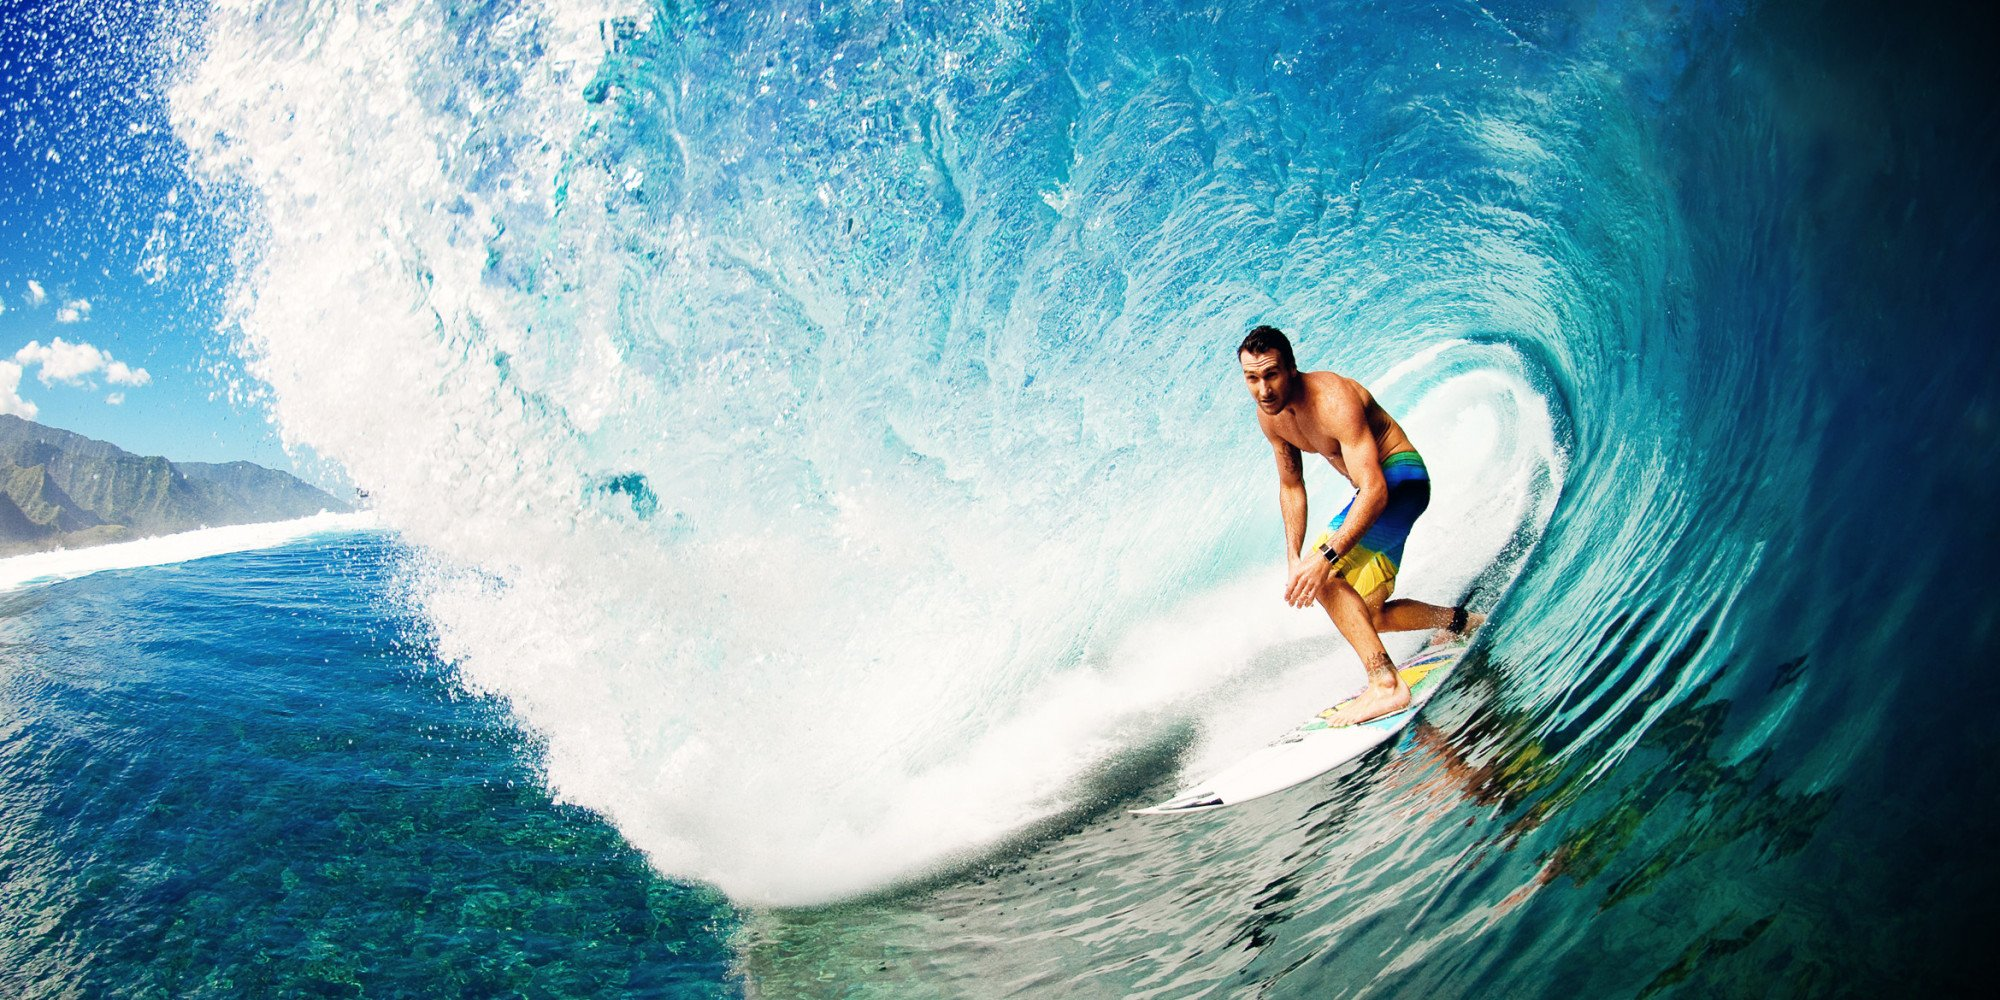 Warm Up for Surfing by Lucy Johnson